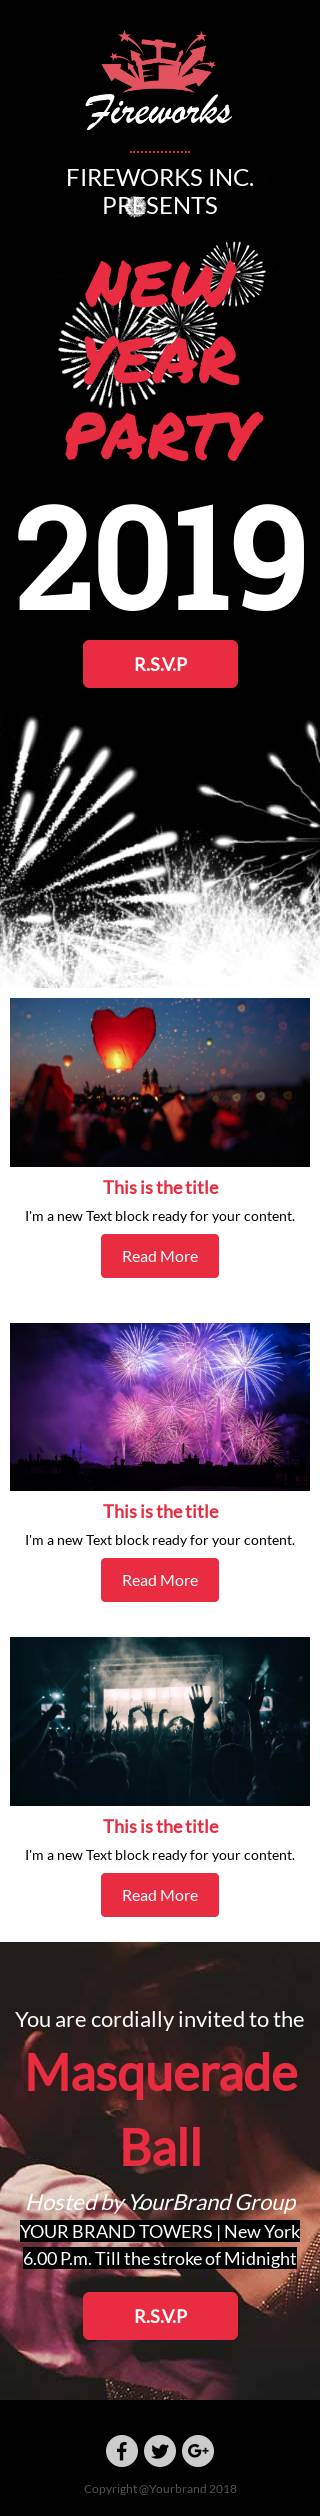 New Year Party email template